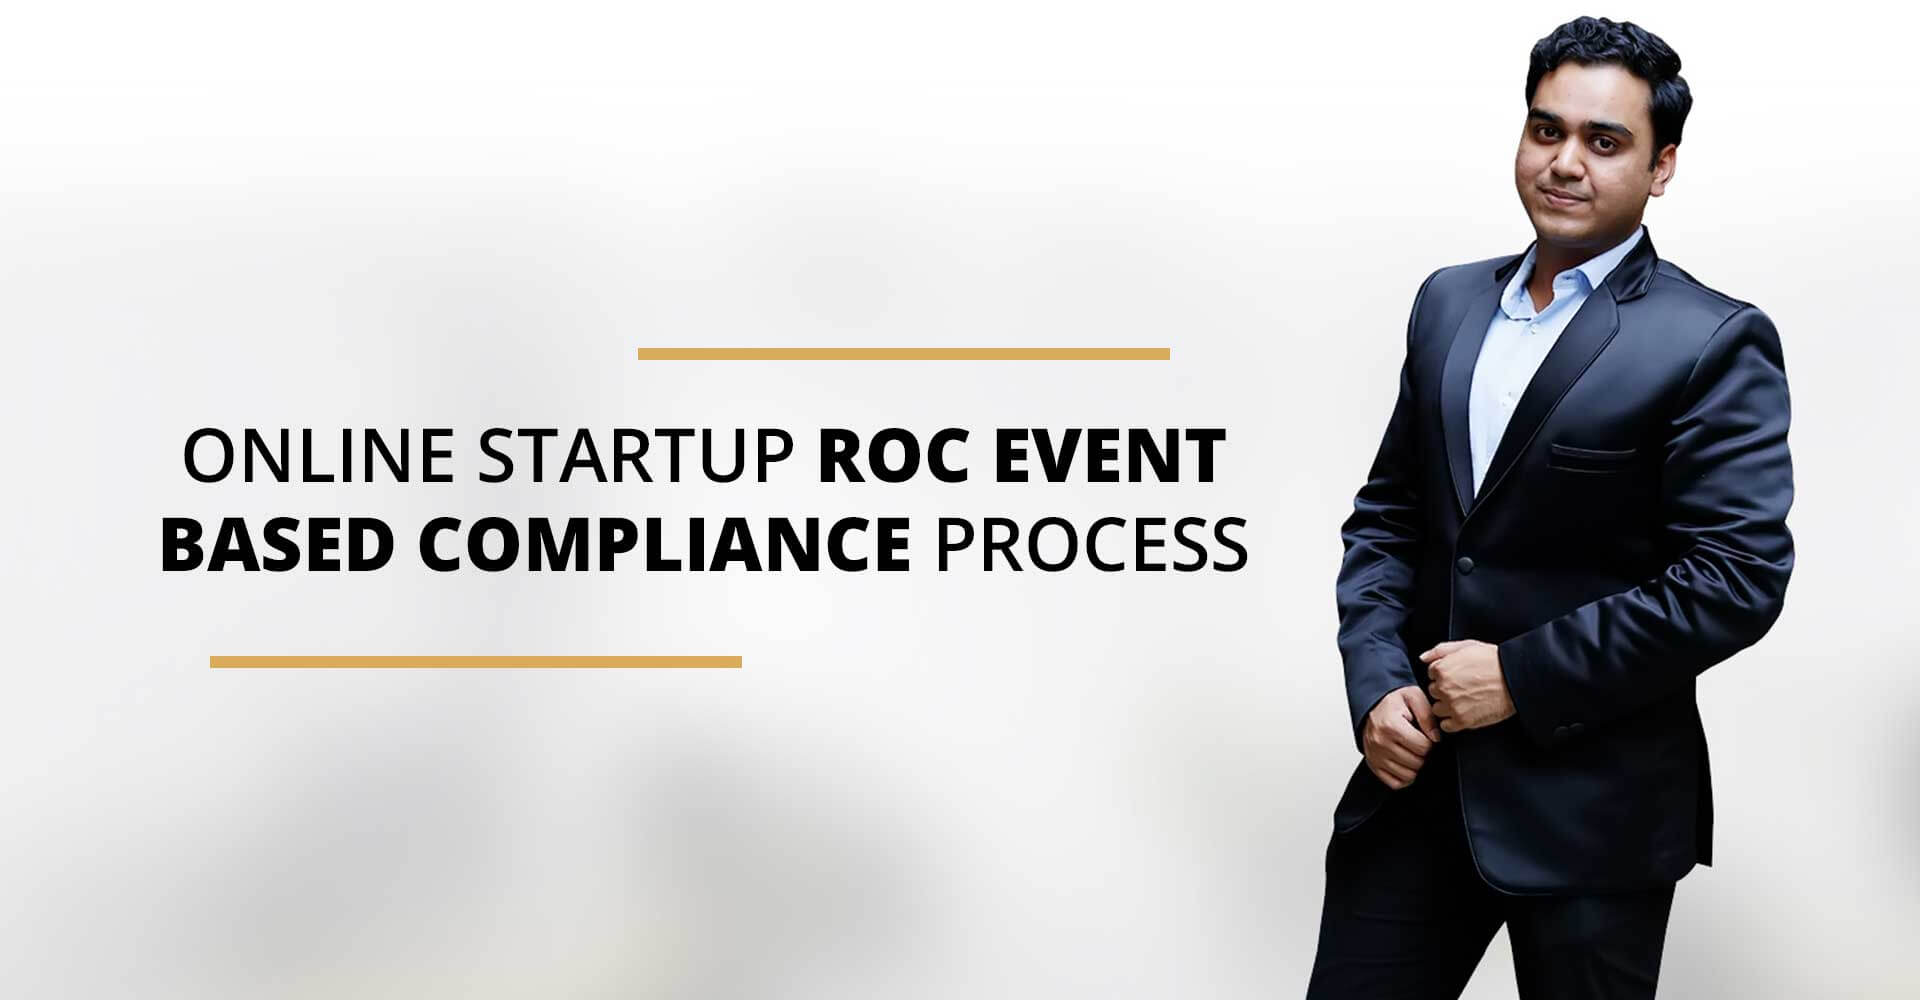 ONLINE STARTUP ROC EVENT BASED COMPLIANCE PROCESS